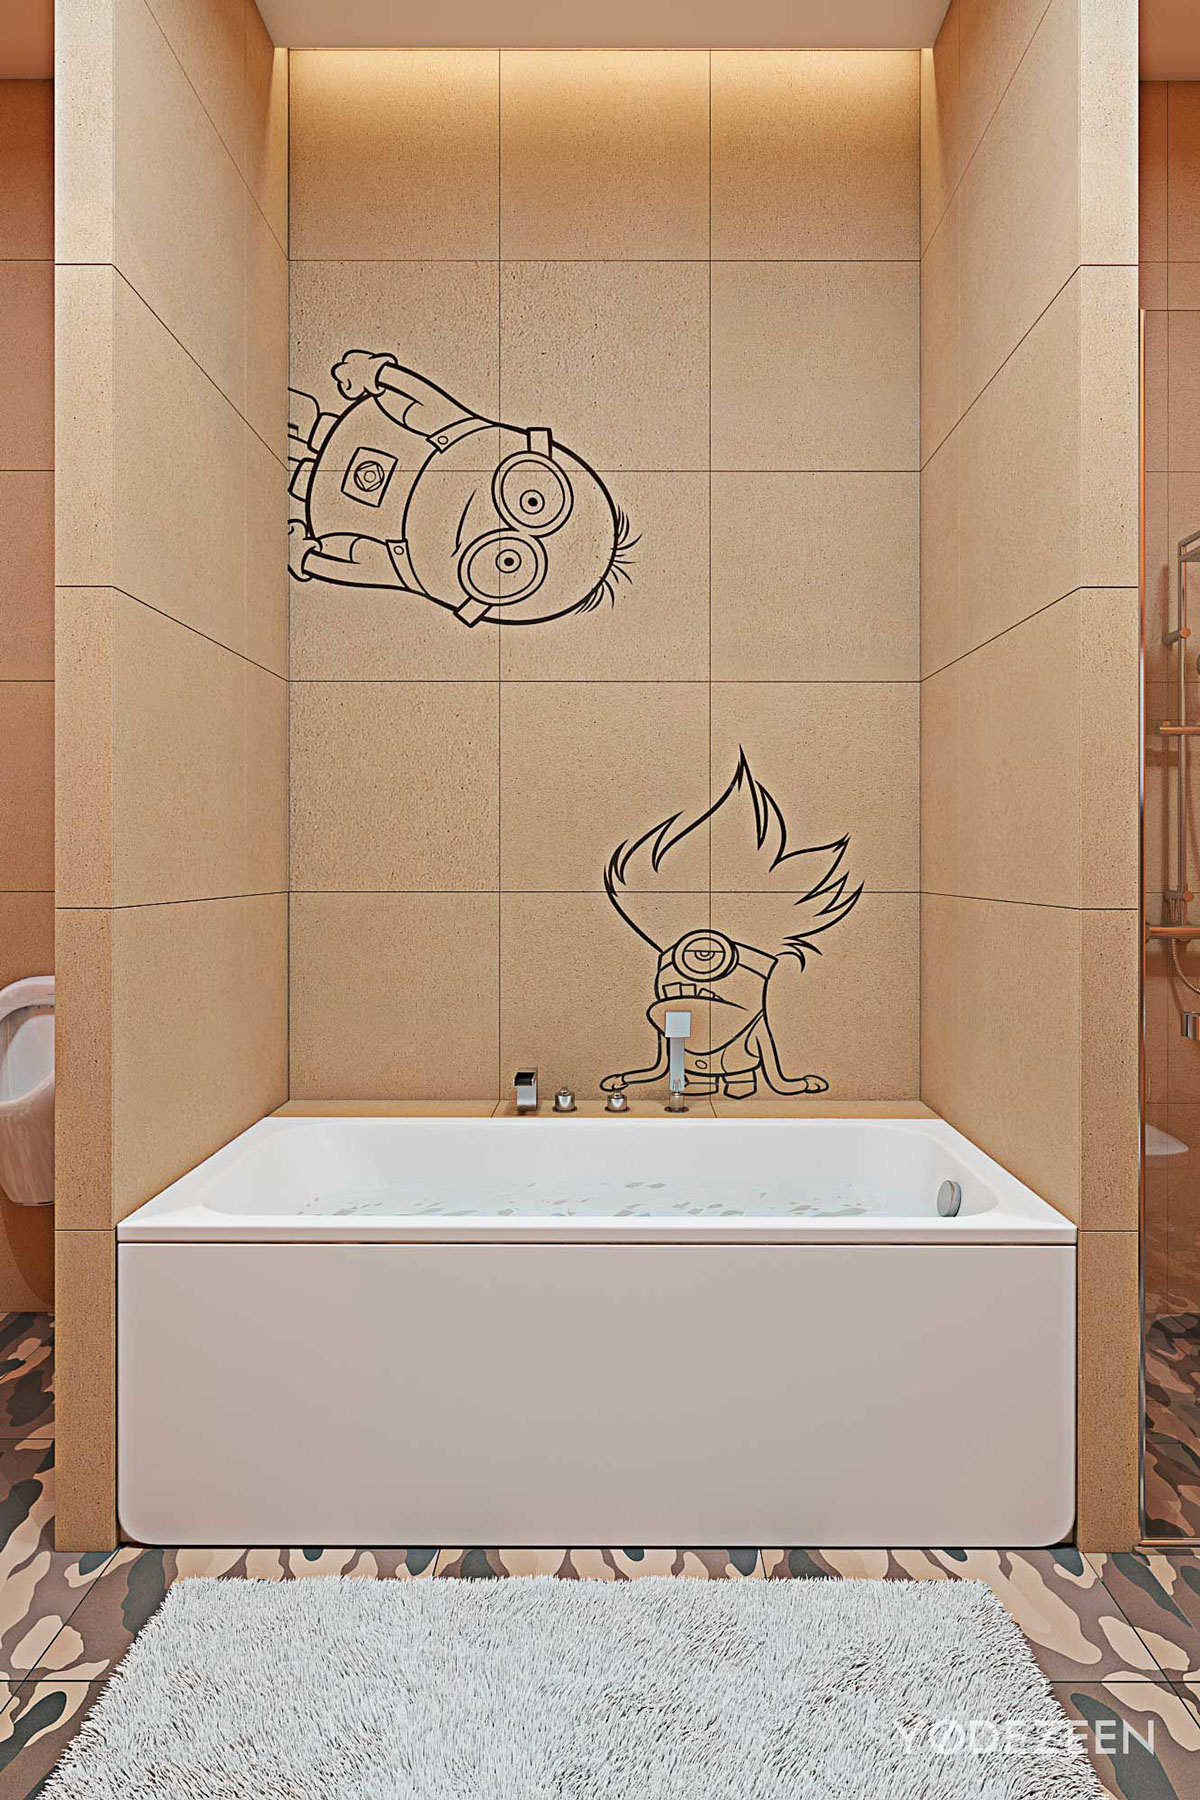 Minions Bathroom - A kids friendly apartment design with lots of playful features